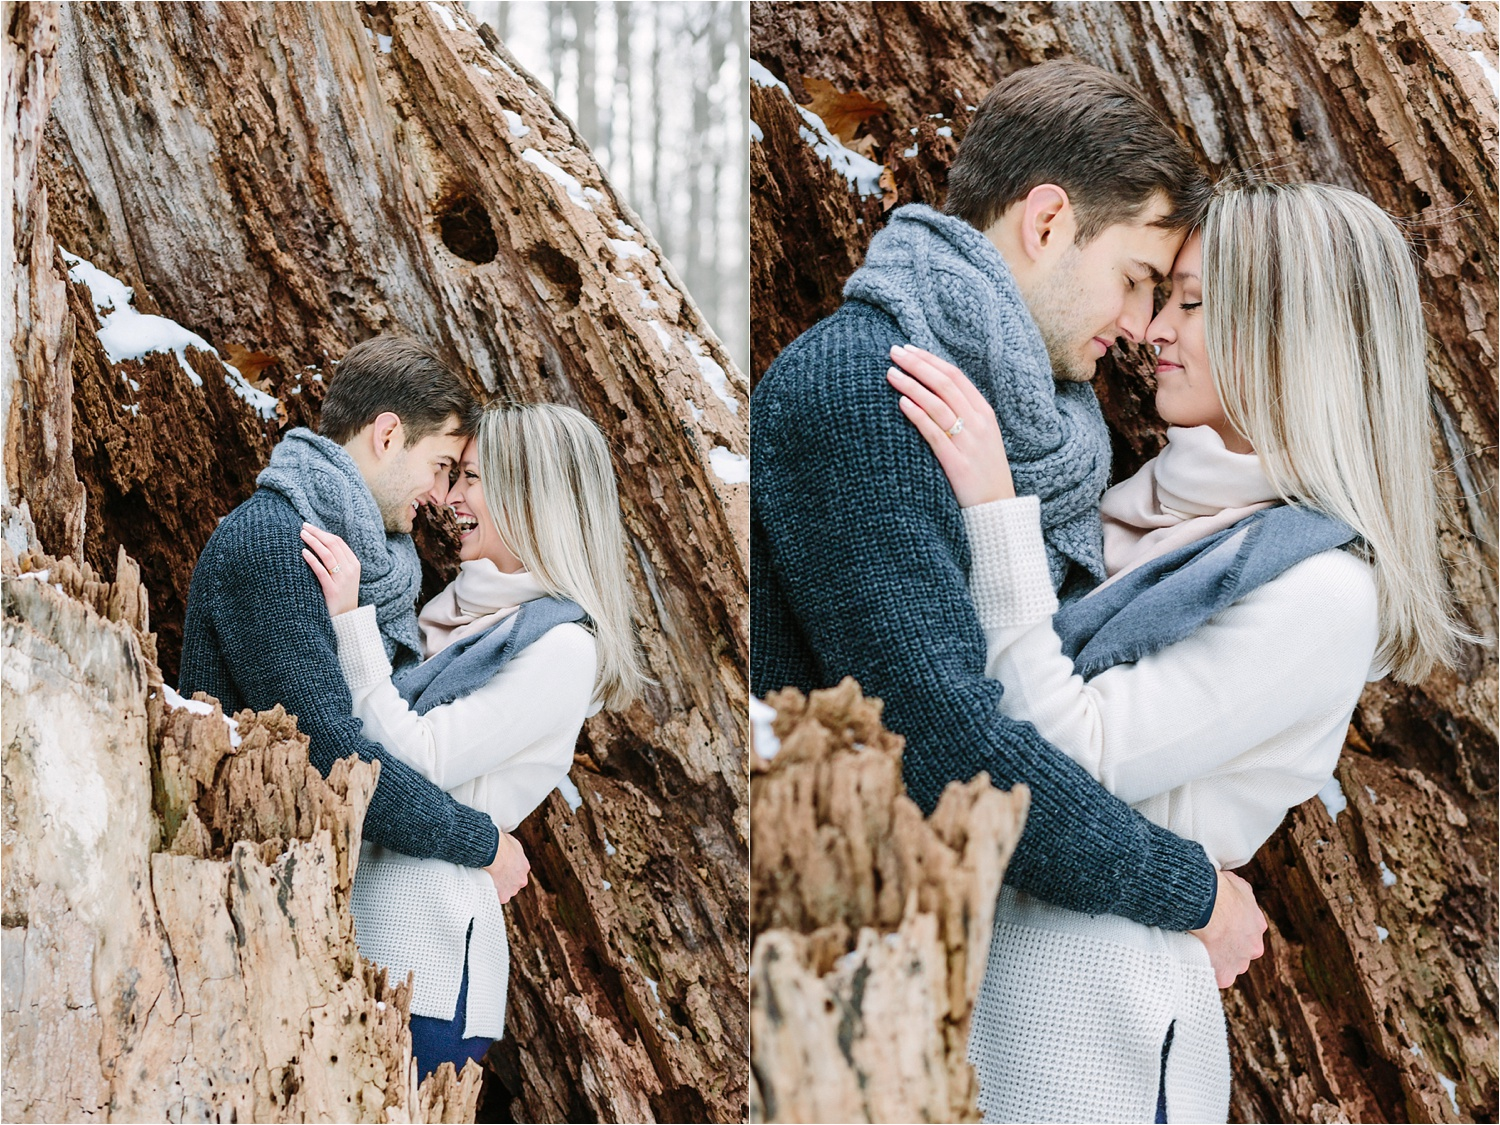 Alex + Becca's Engagement Photography Session in Poland, Ohio at Poland Municipal Forest